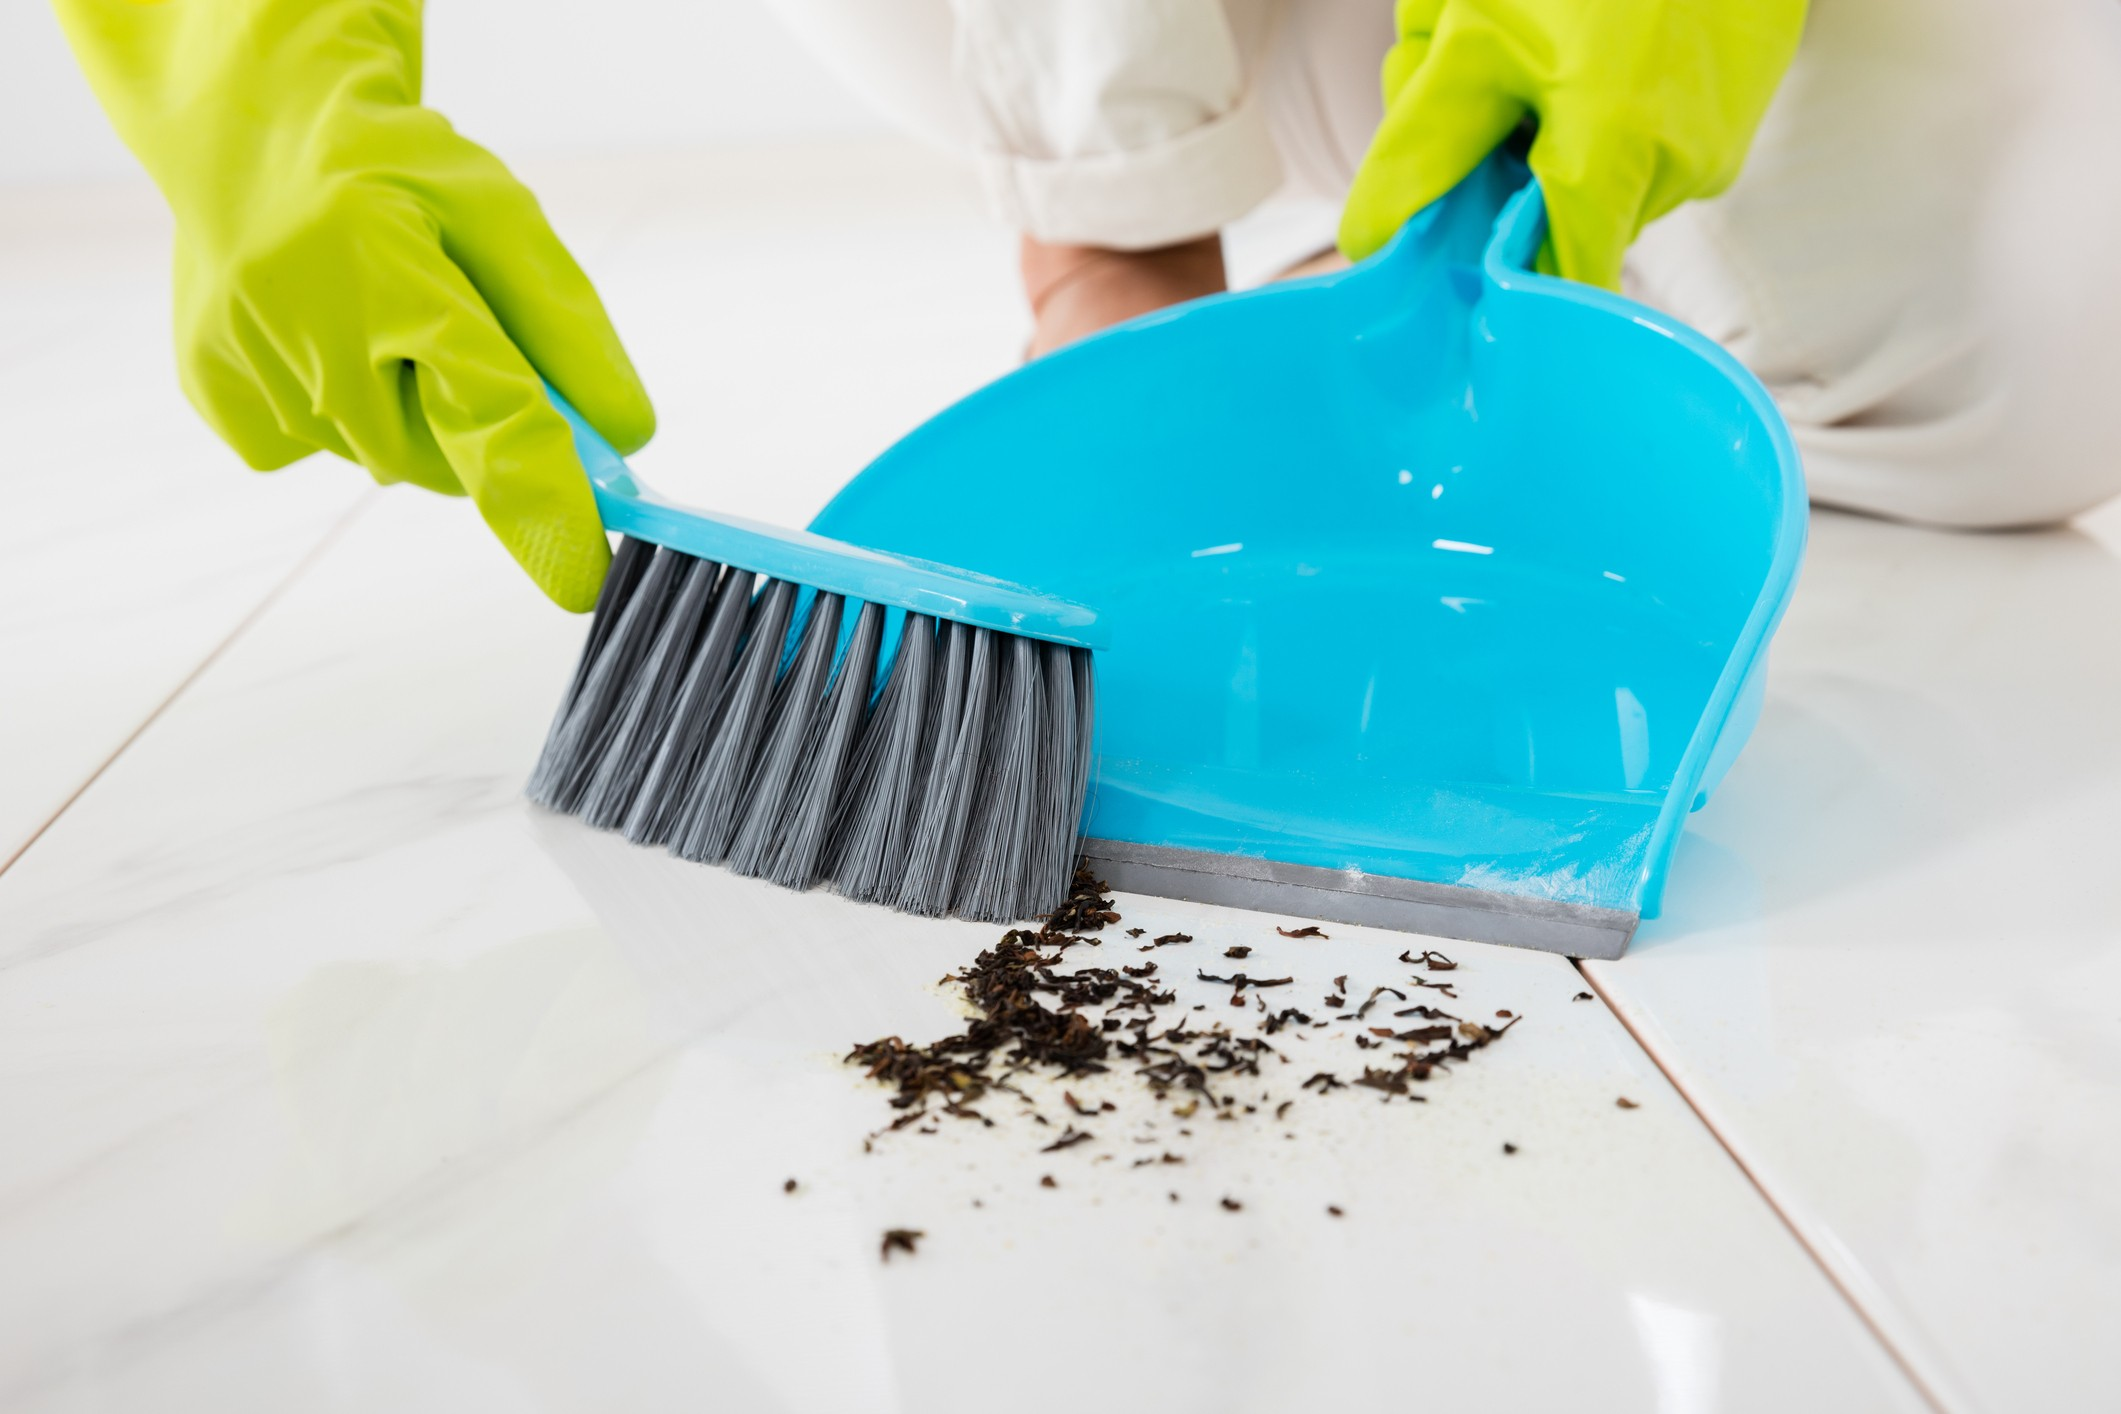 Person Sweeping Floor With Broom And Dustpan